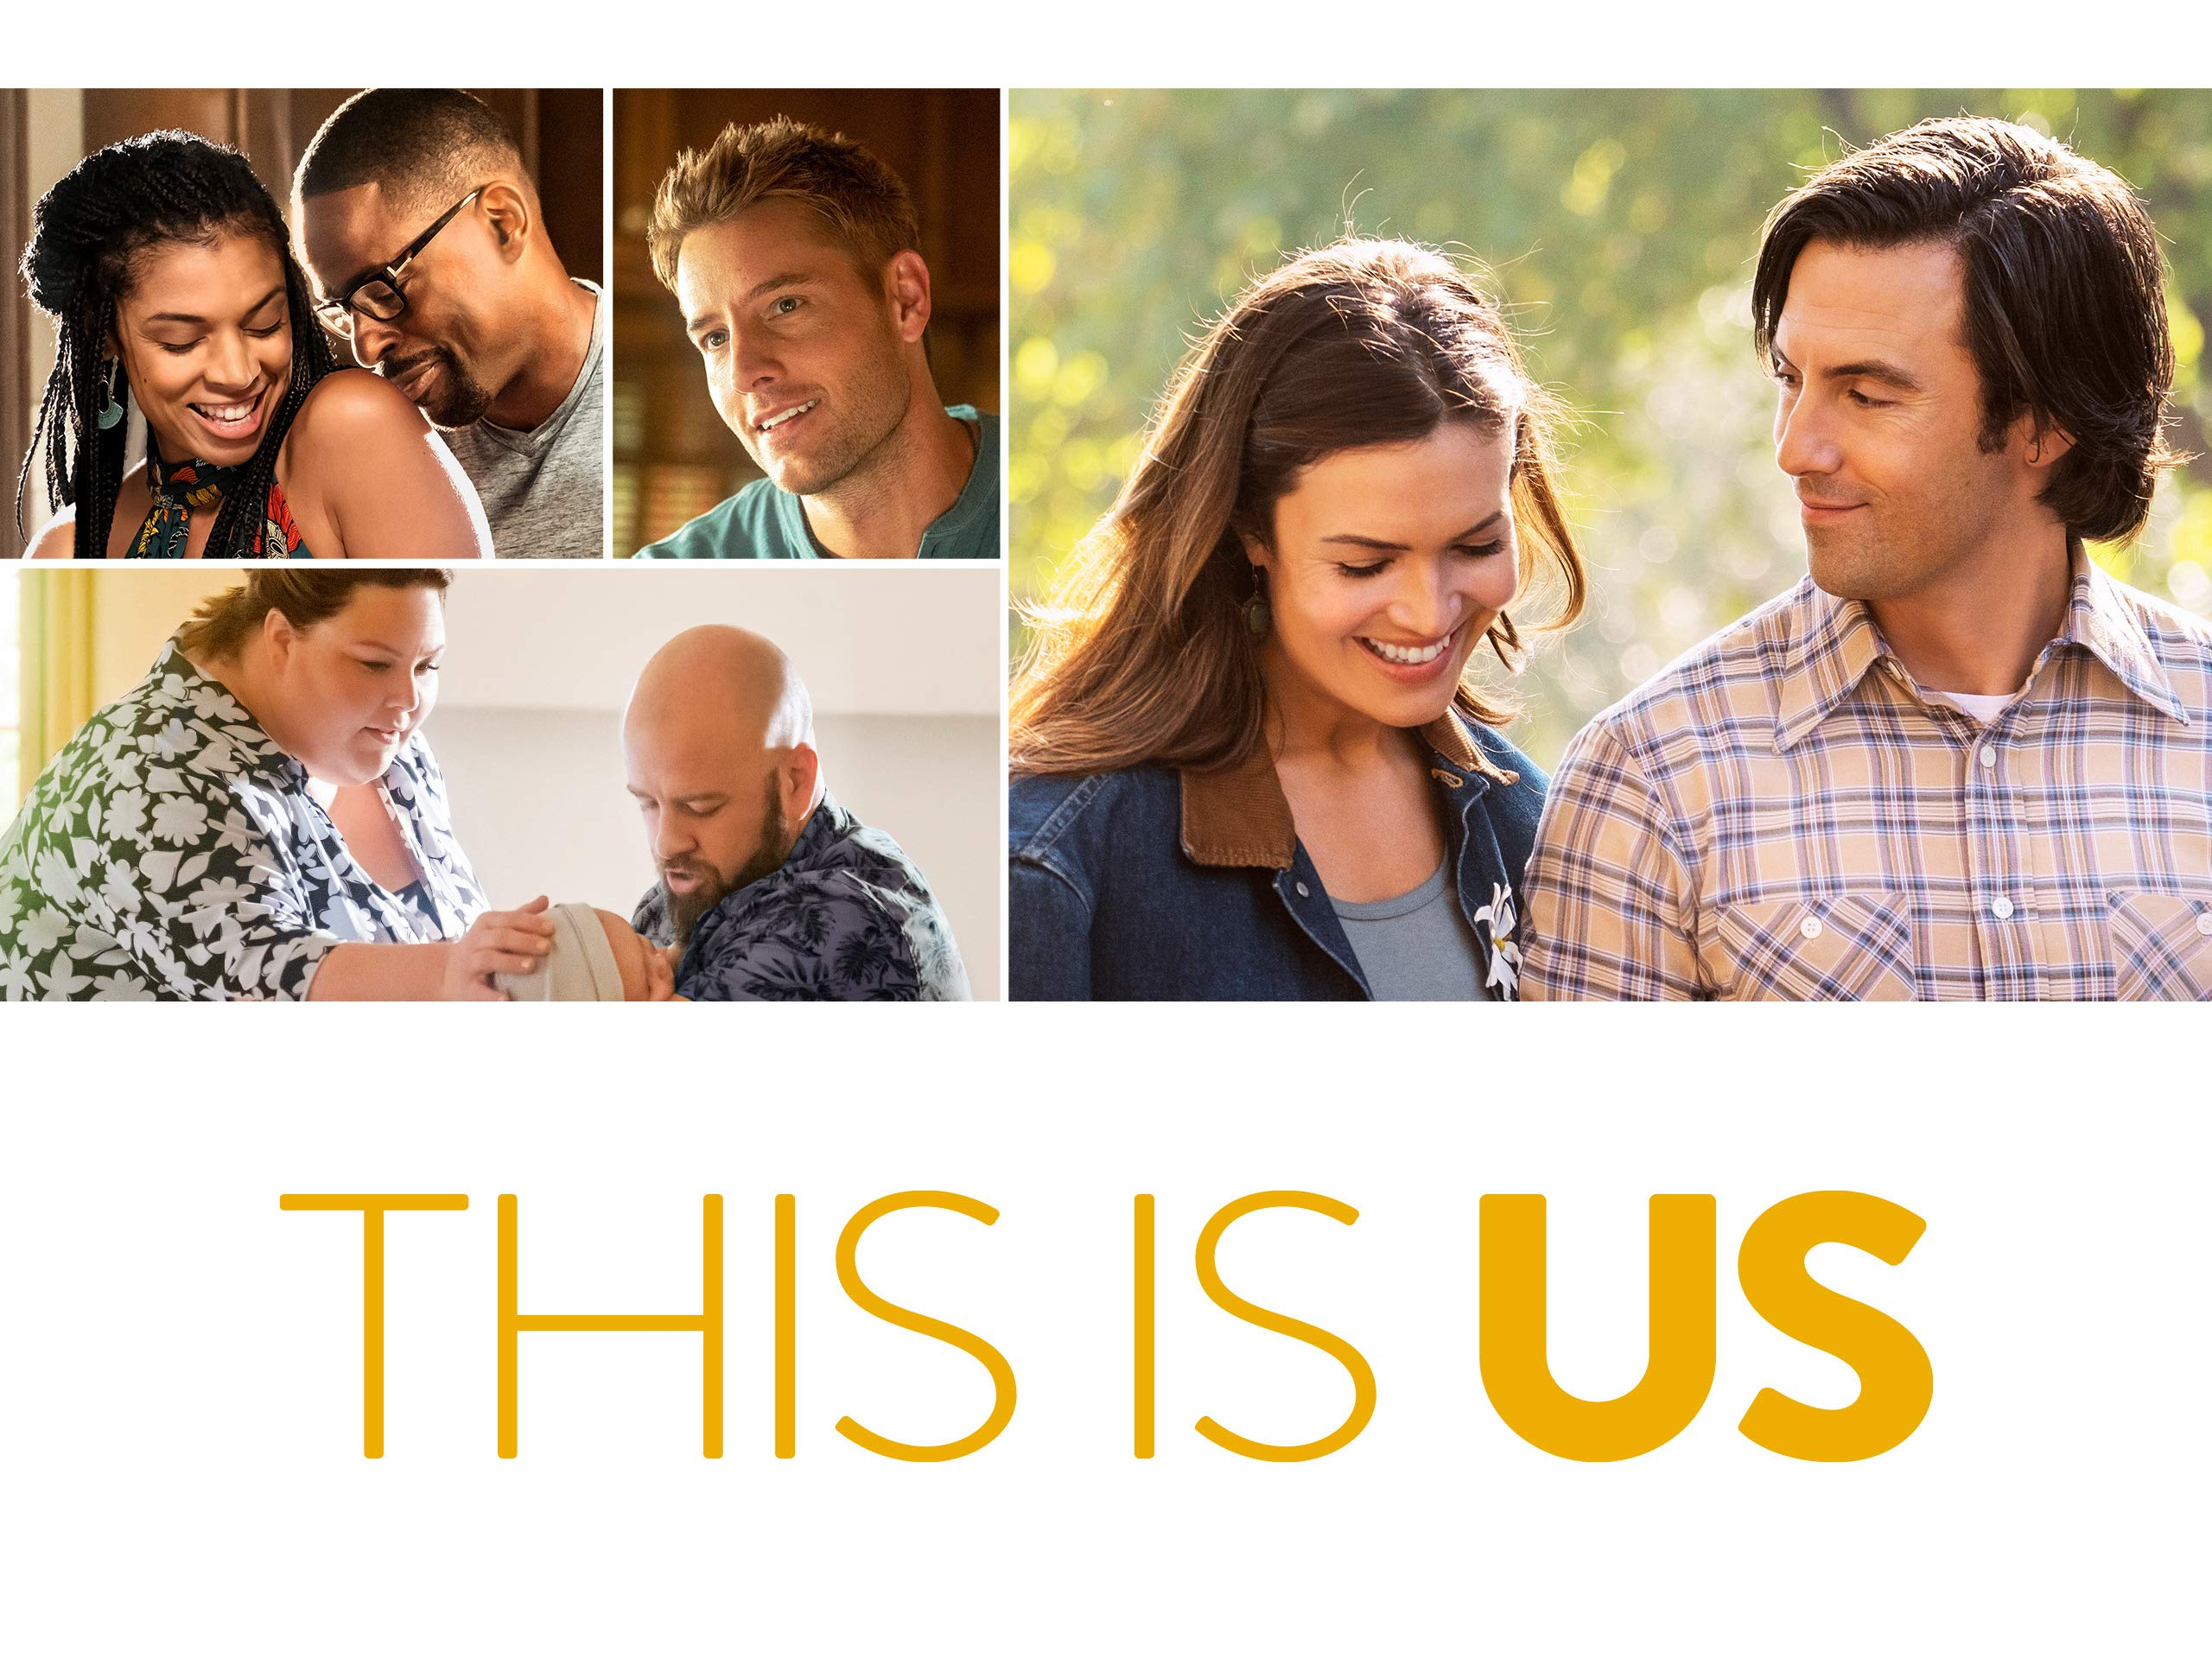 This Is Us Season 4 Episode 18 Subtitle (English Srt) Download